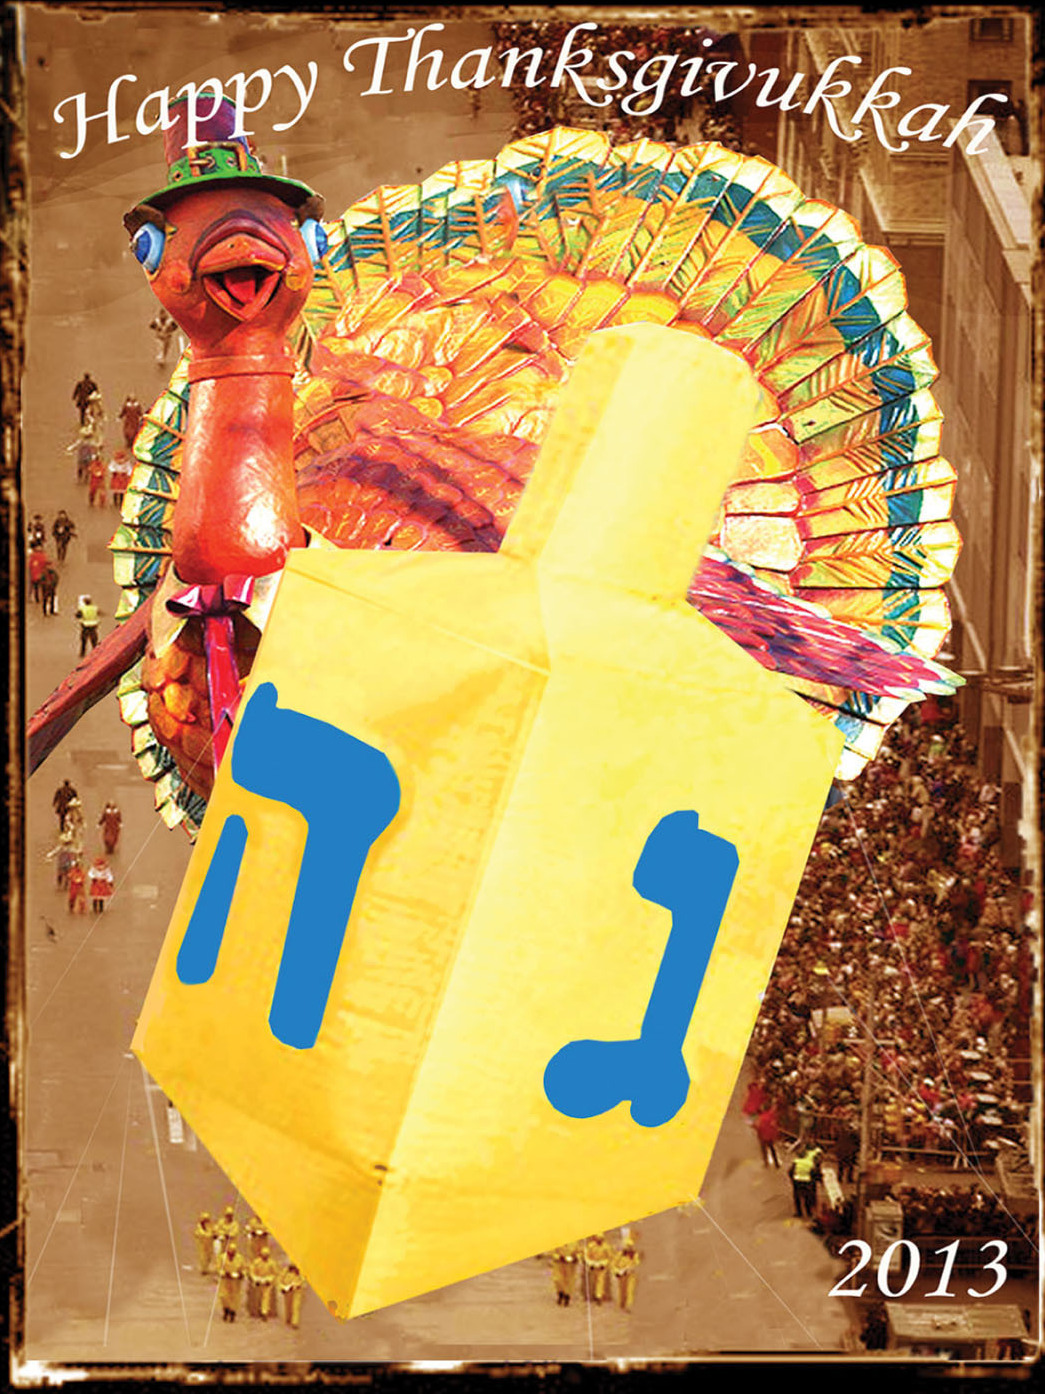 Thanksgivukkah -- it's the best of both worlds.